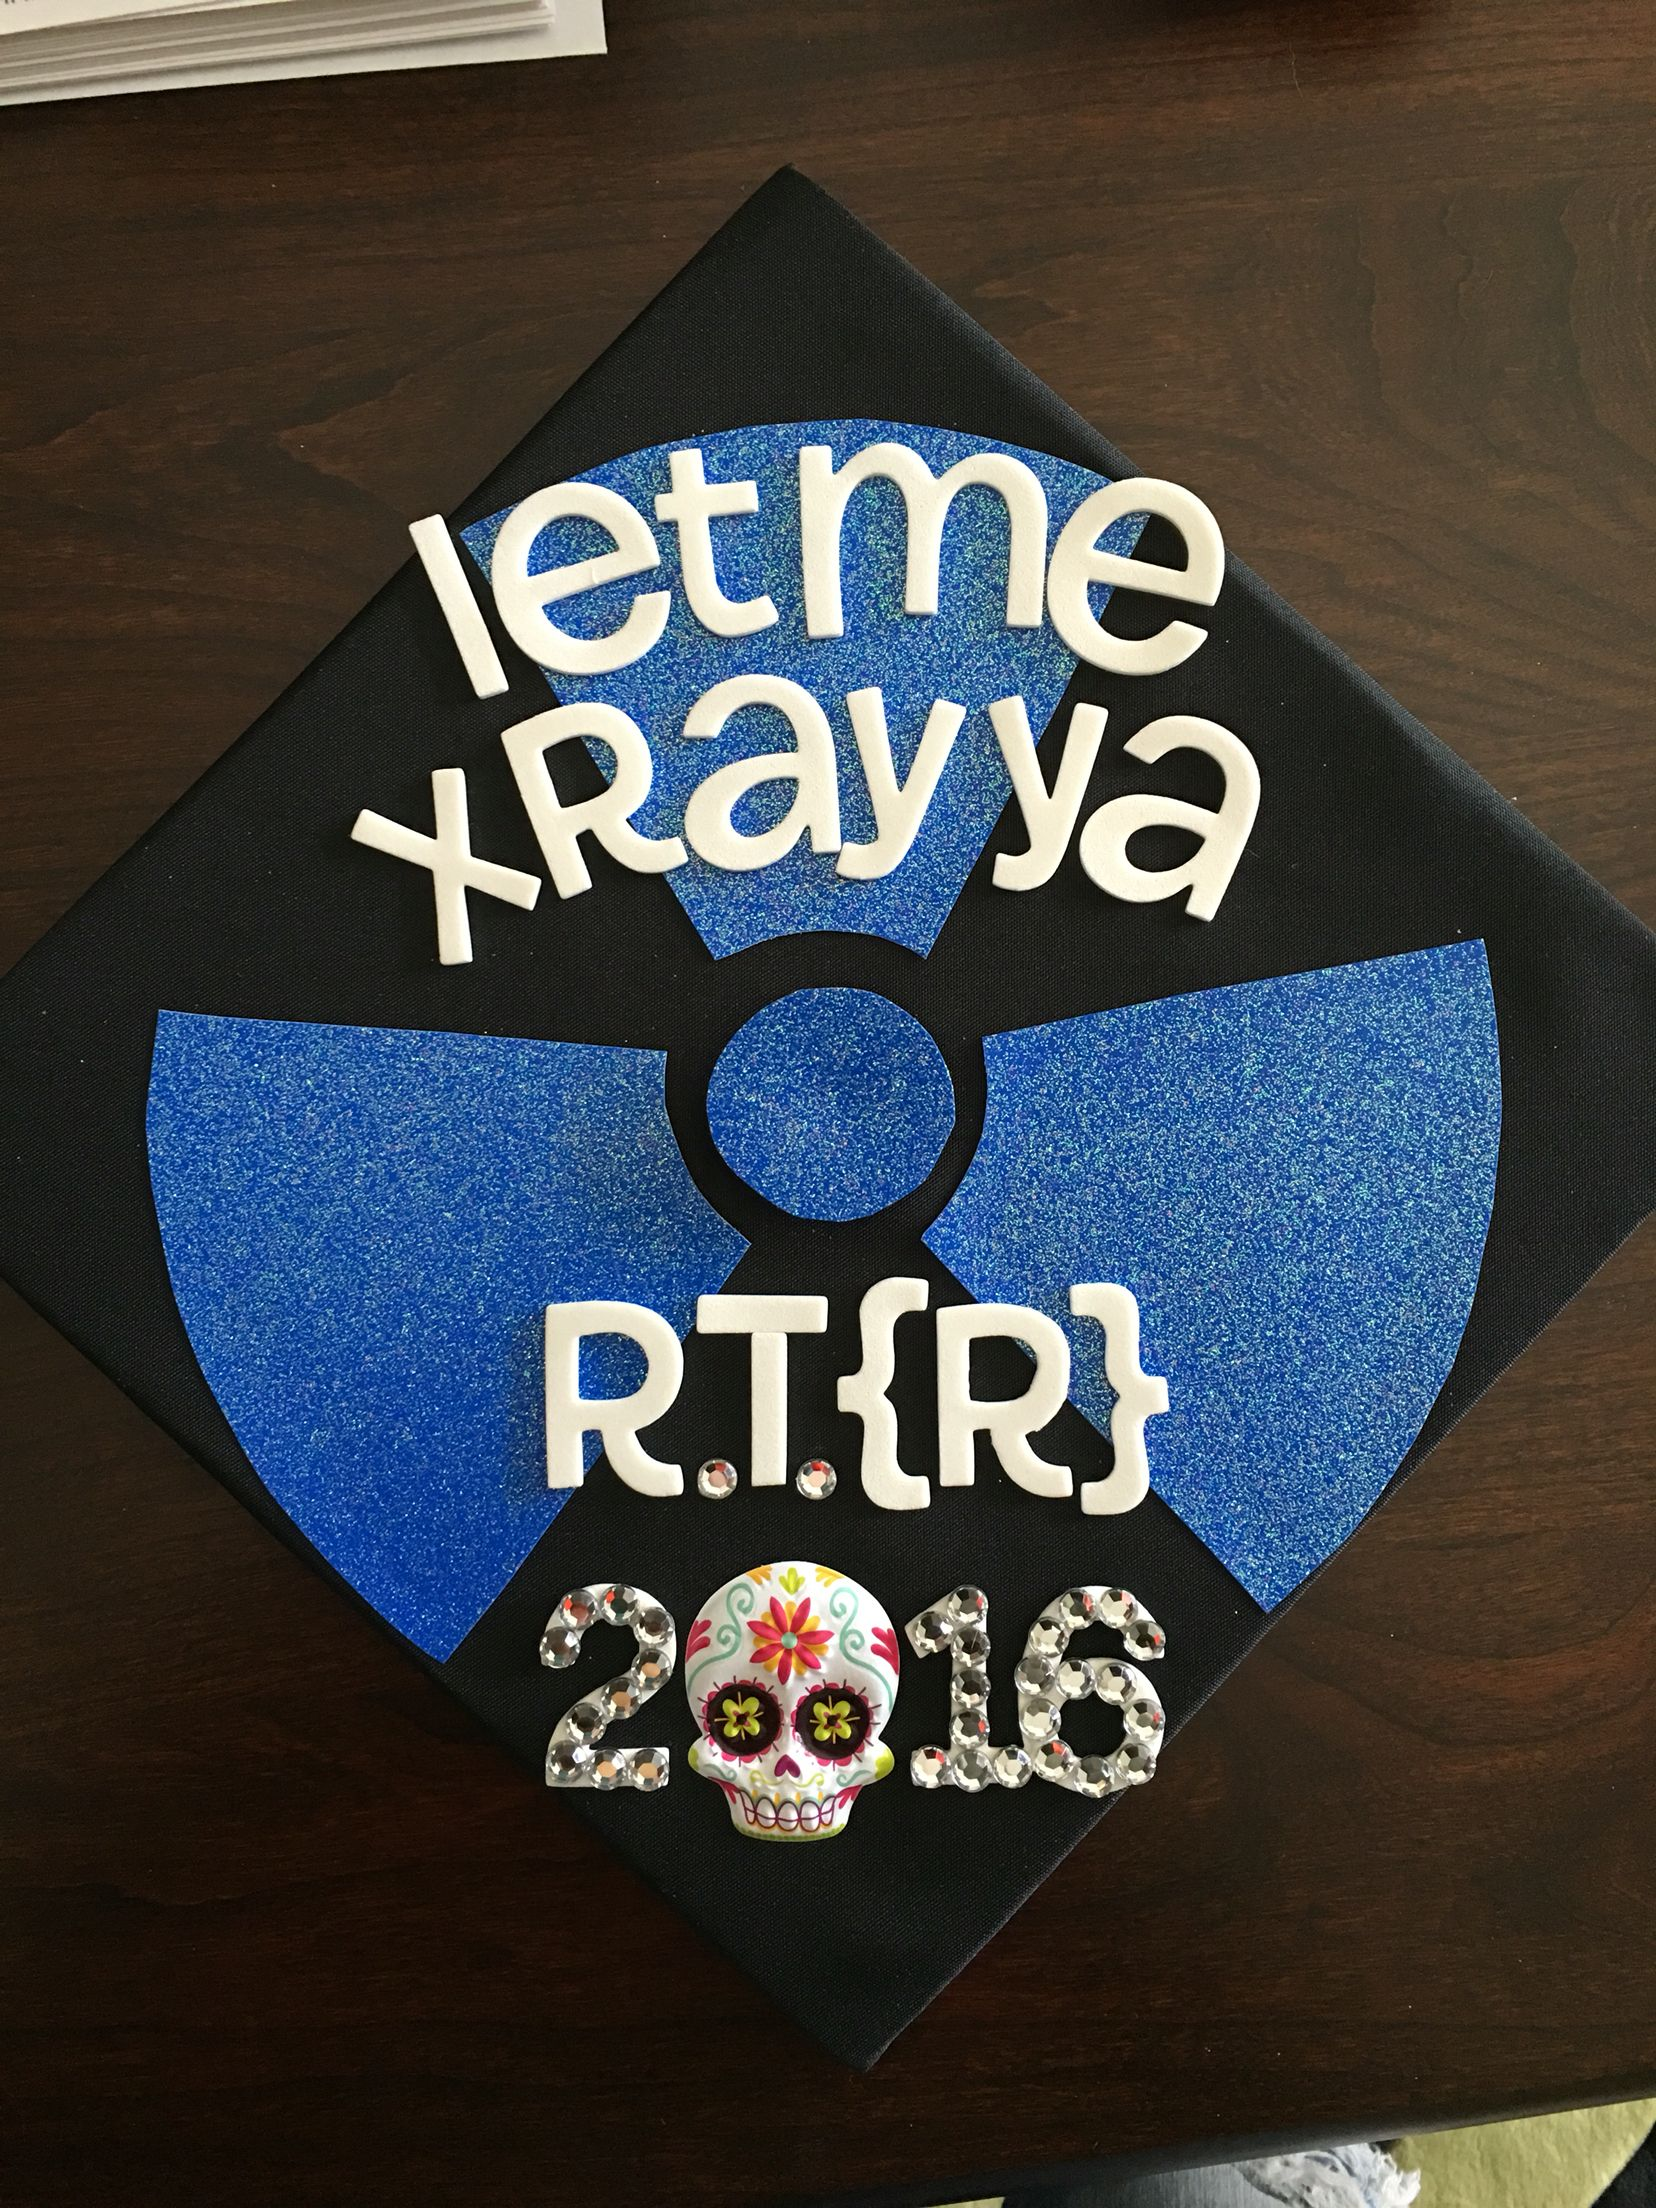 X,Ray graduation cap! Graduation Cap Designs, Graduation Cap Decoration,  Graduation Day